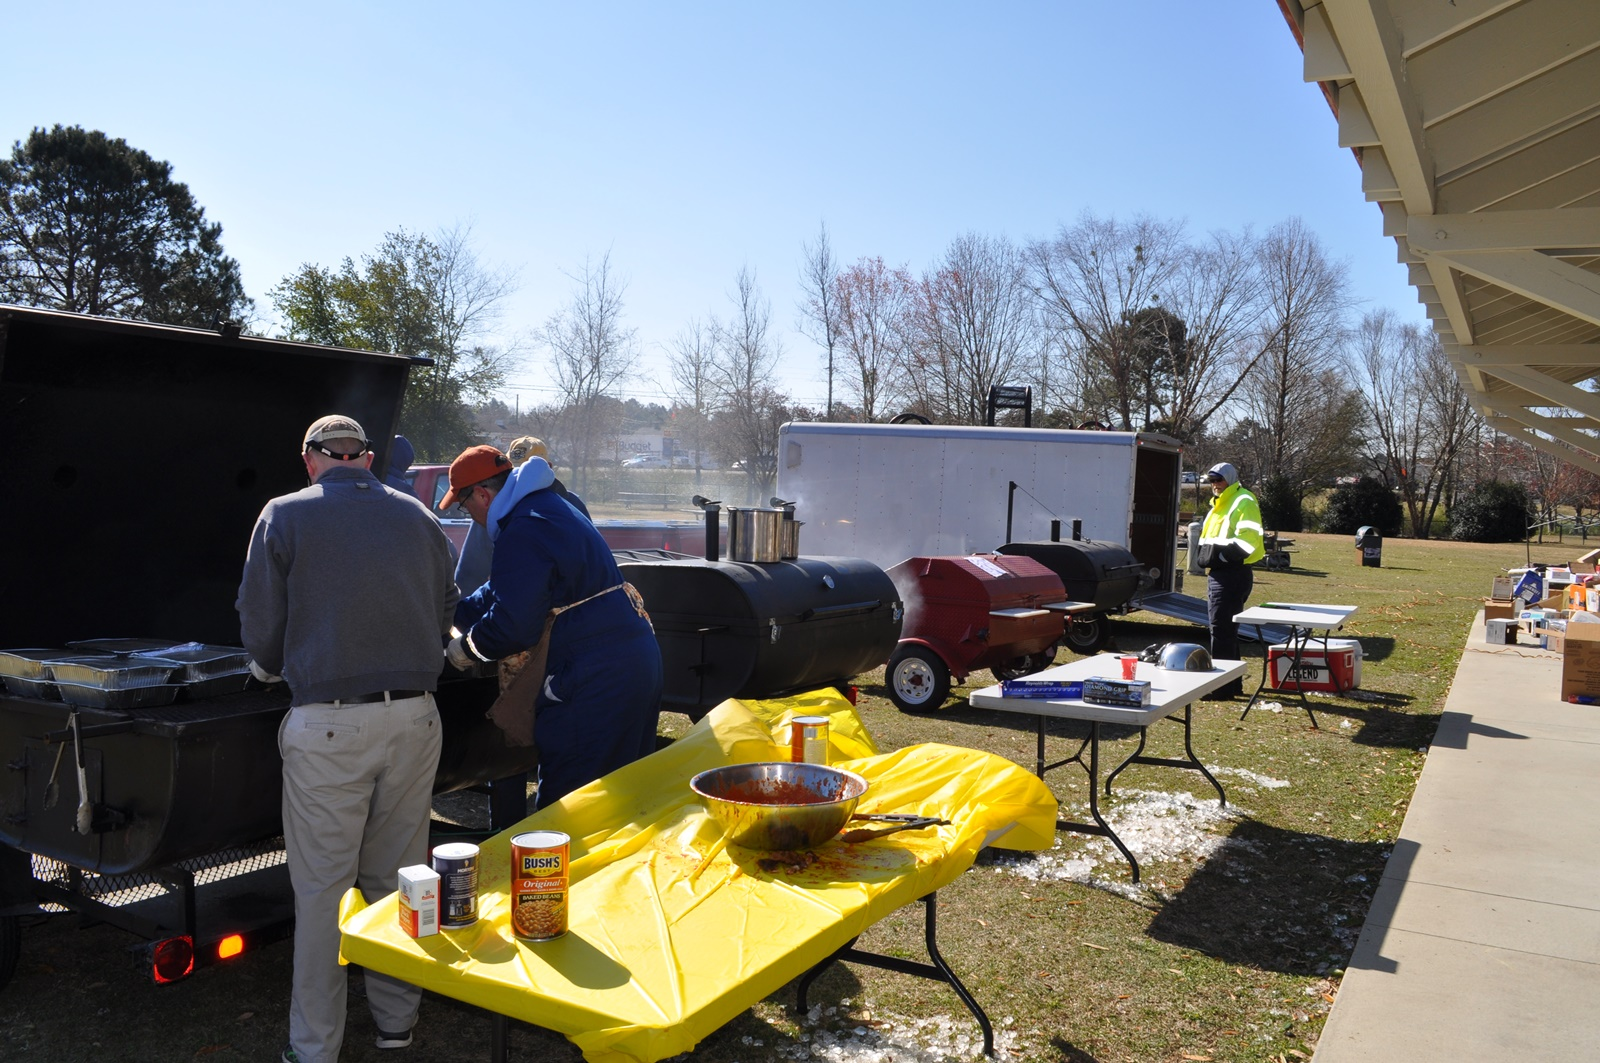 2017-0316 BBQ (Lions Mark, Davis, Mitch) - Four Grills Working Along.JPG